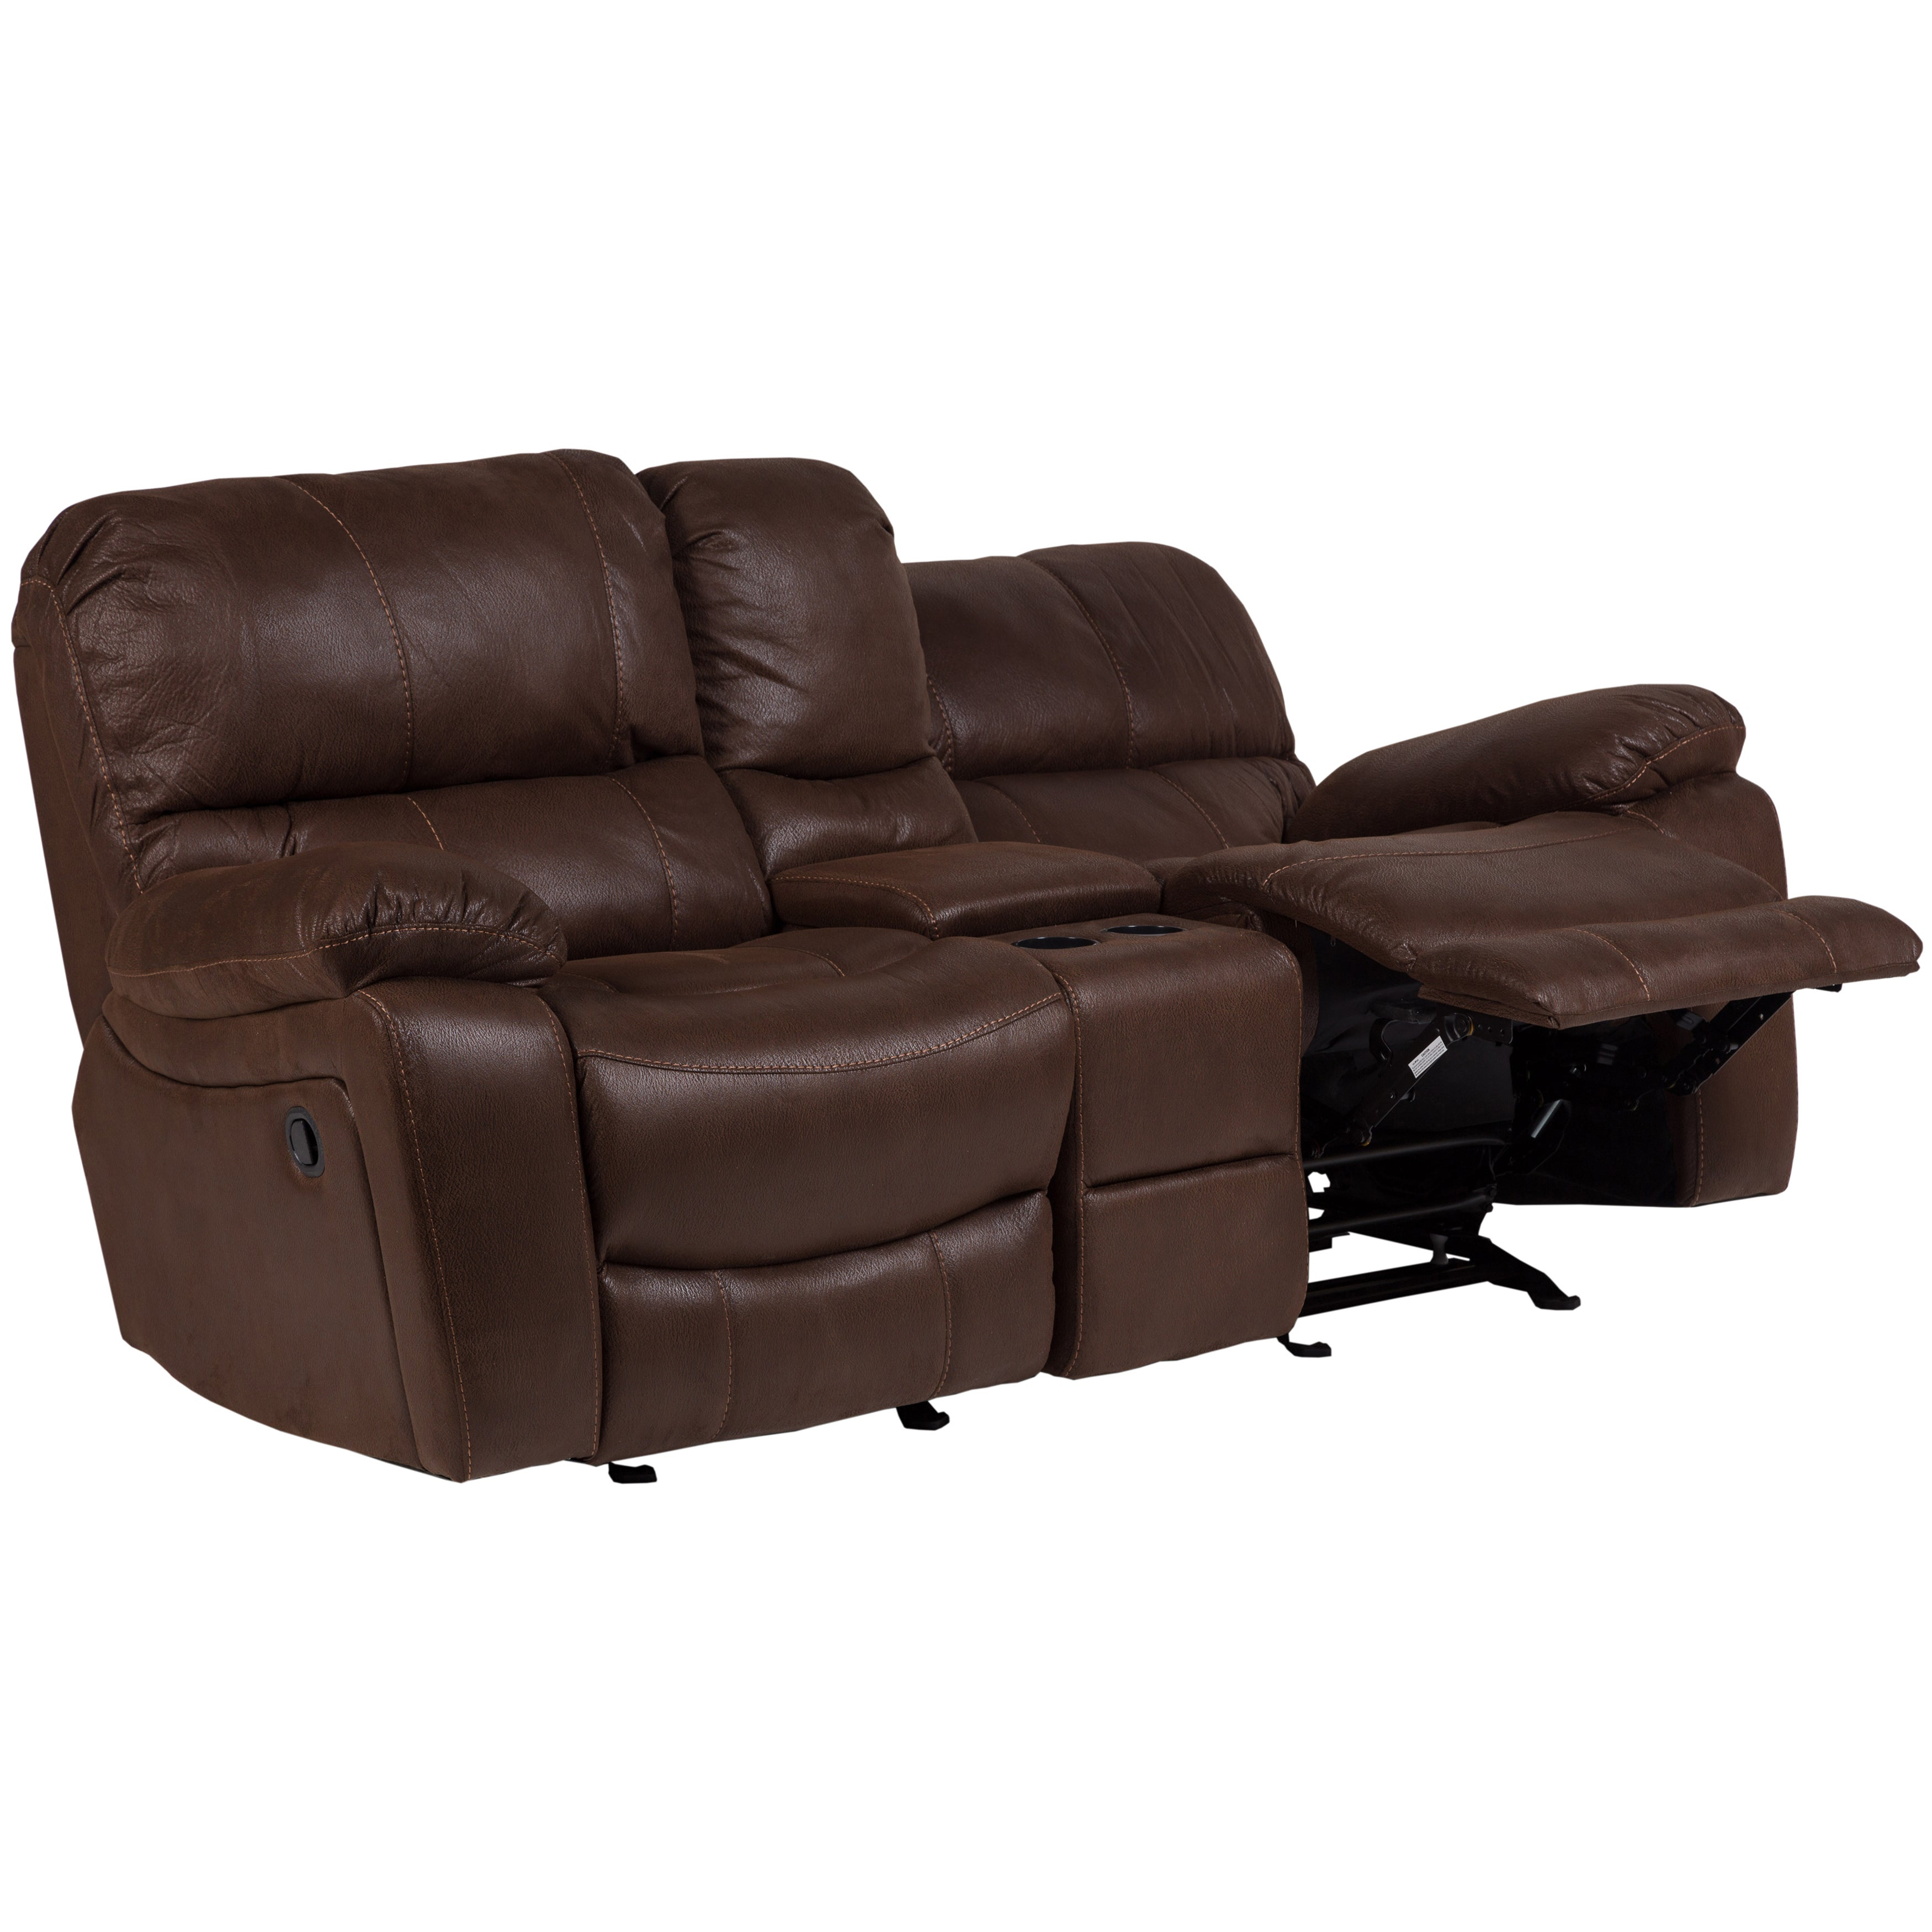 loveseat massage power com center with reclining spotthevuln console